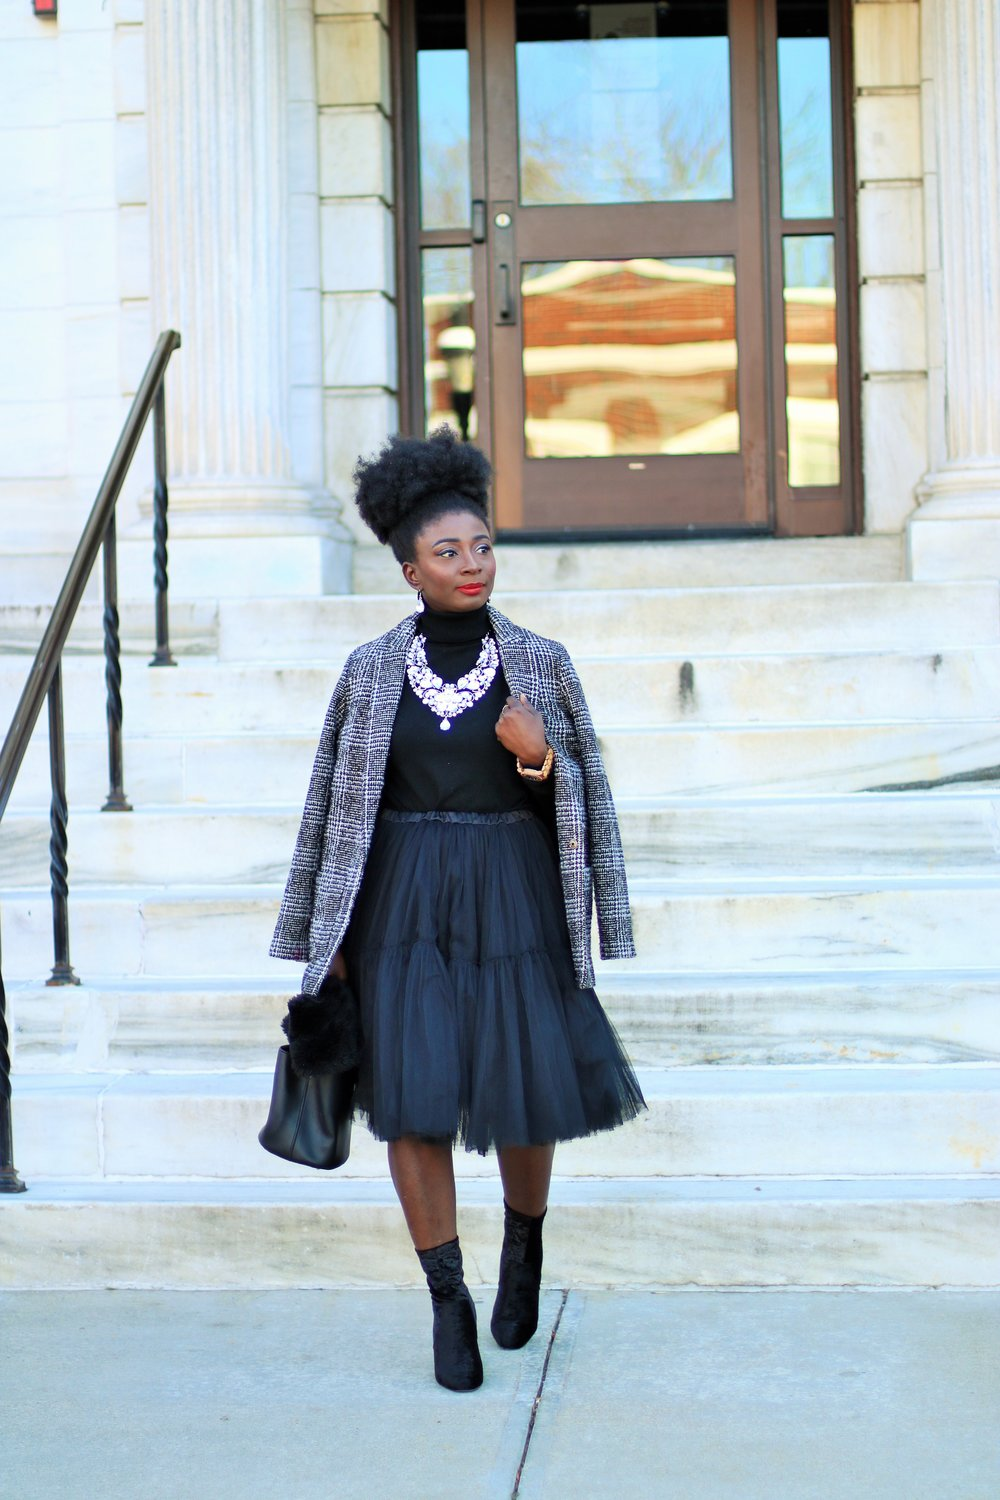 Plaid-Blazer-and-Tulle-Skirt-Outfit-Ideas